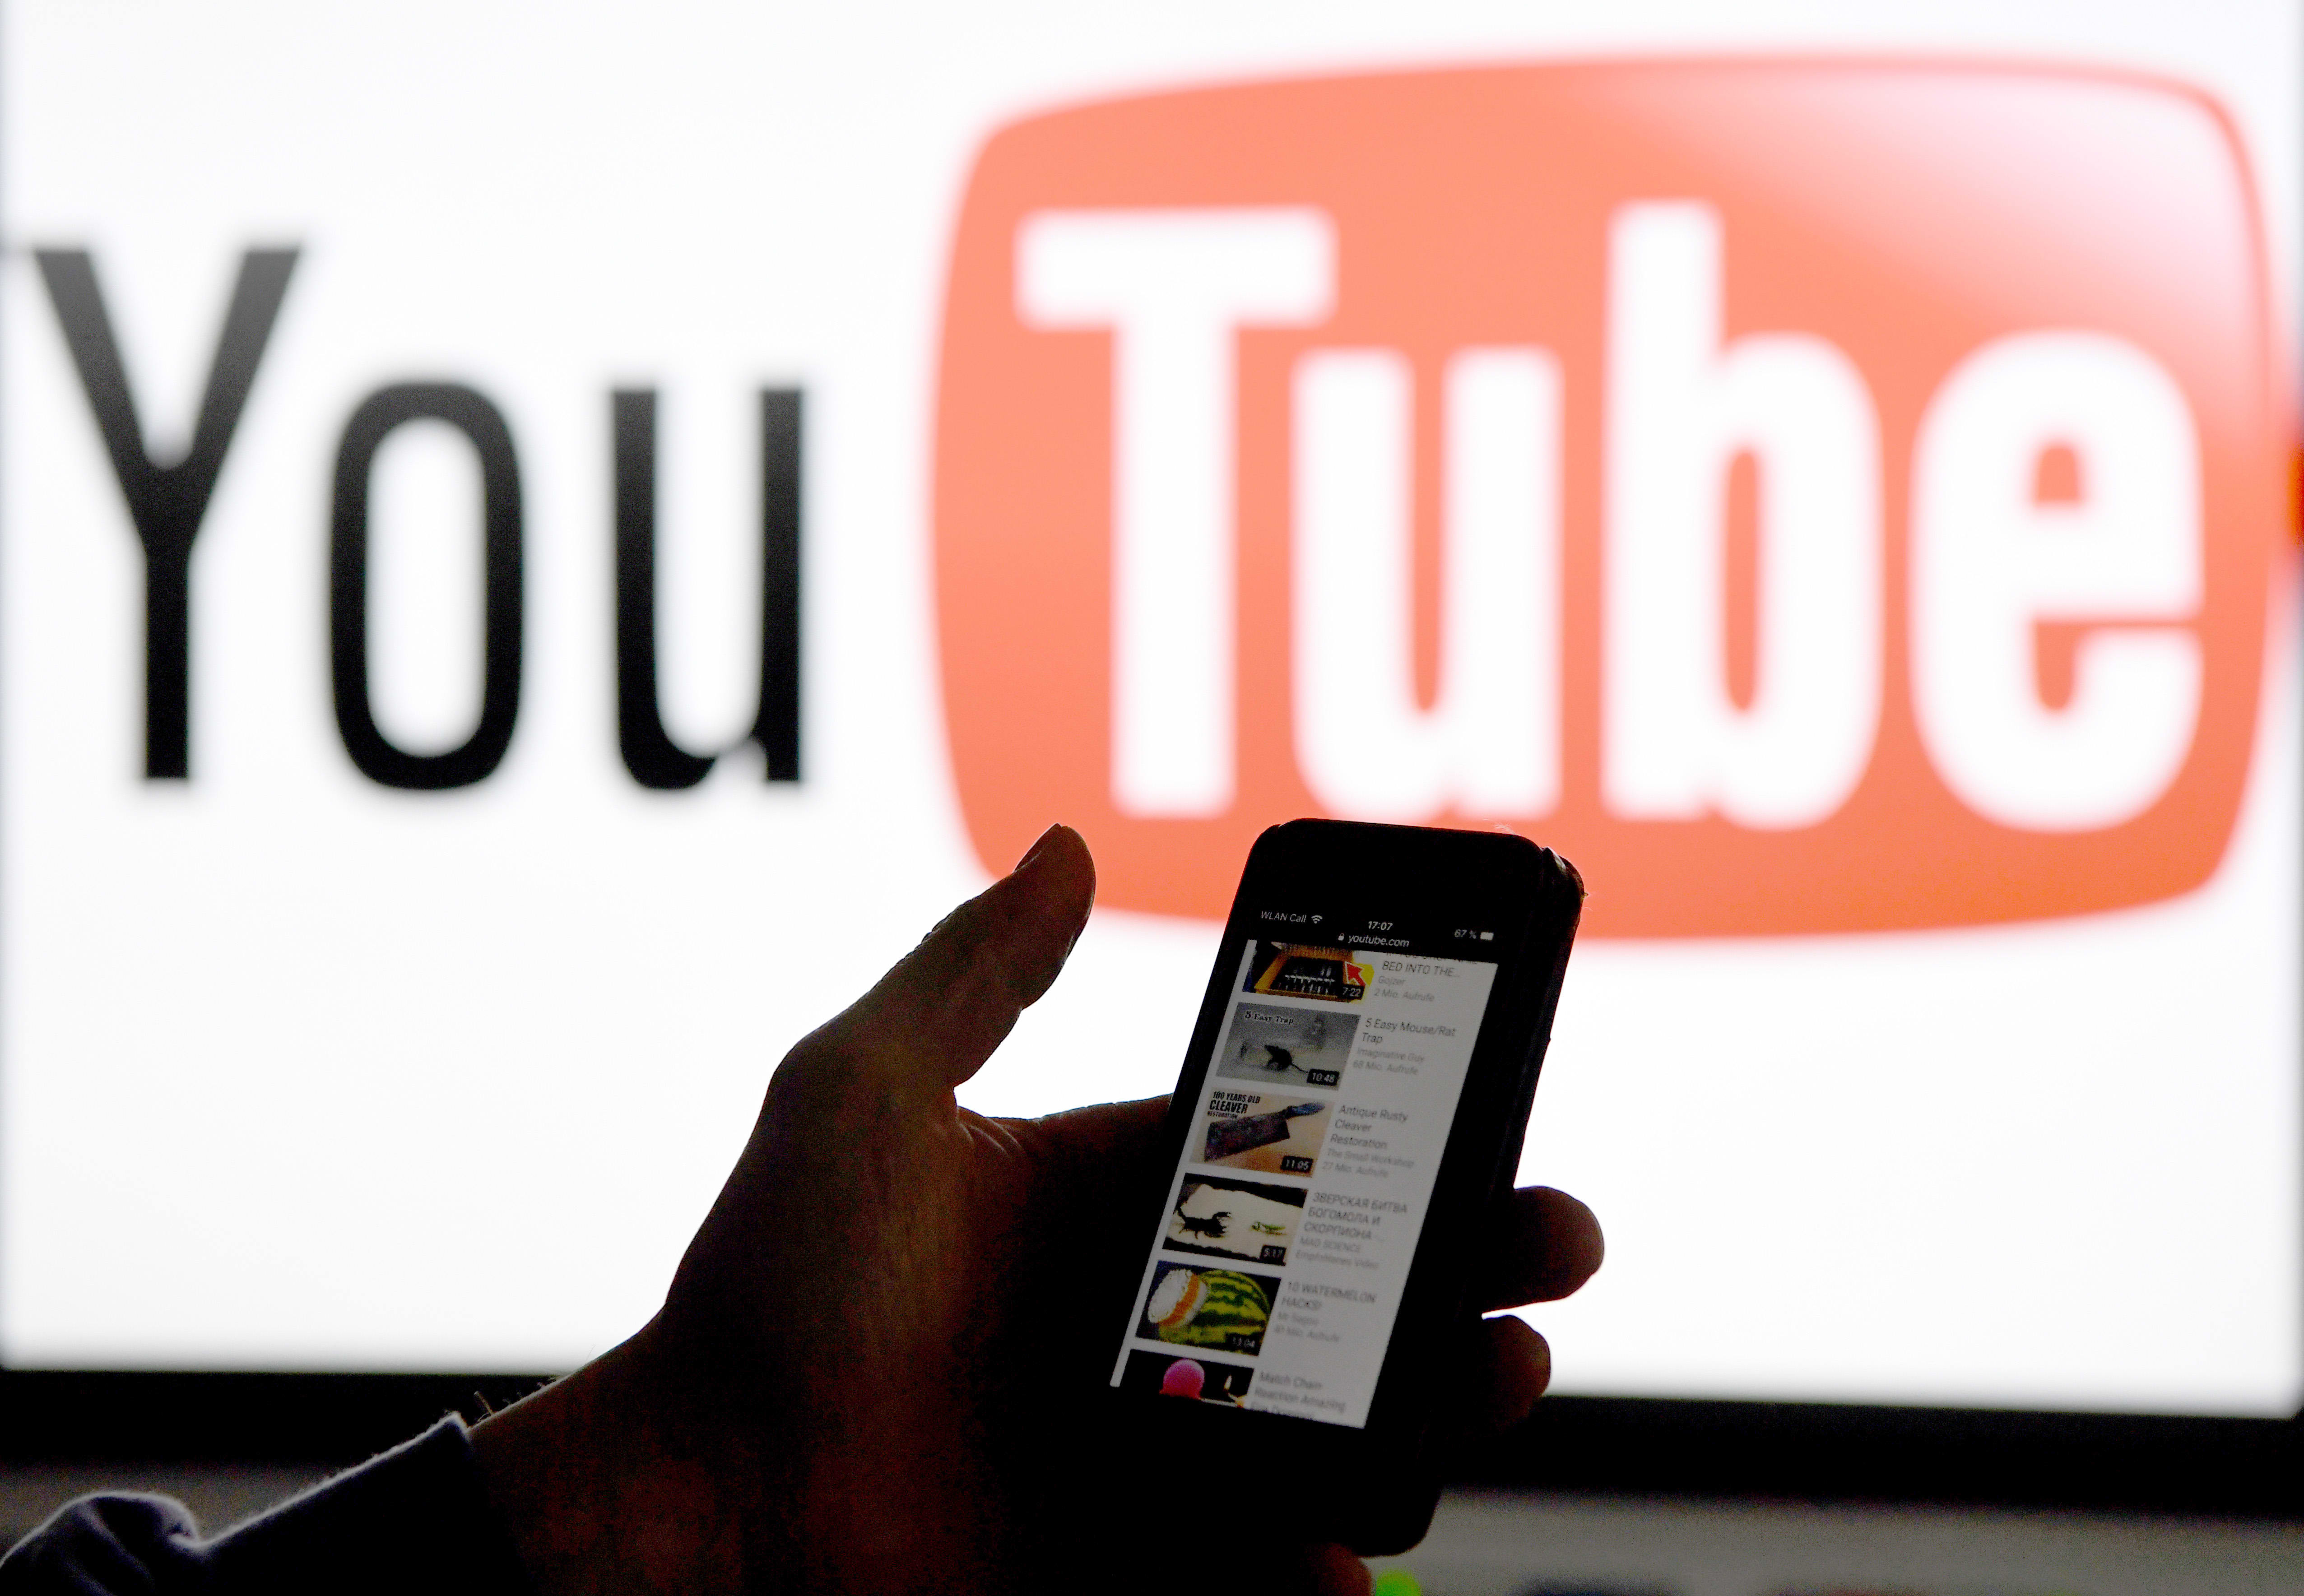 I worry about what regulators might do to YouTube, analyst says